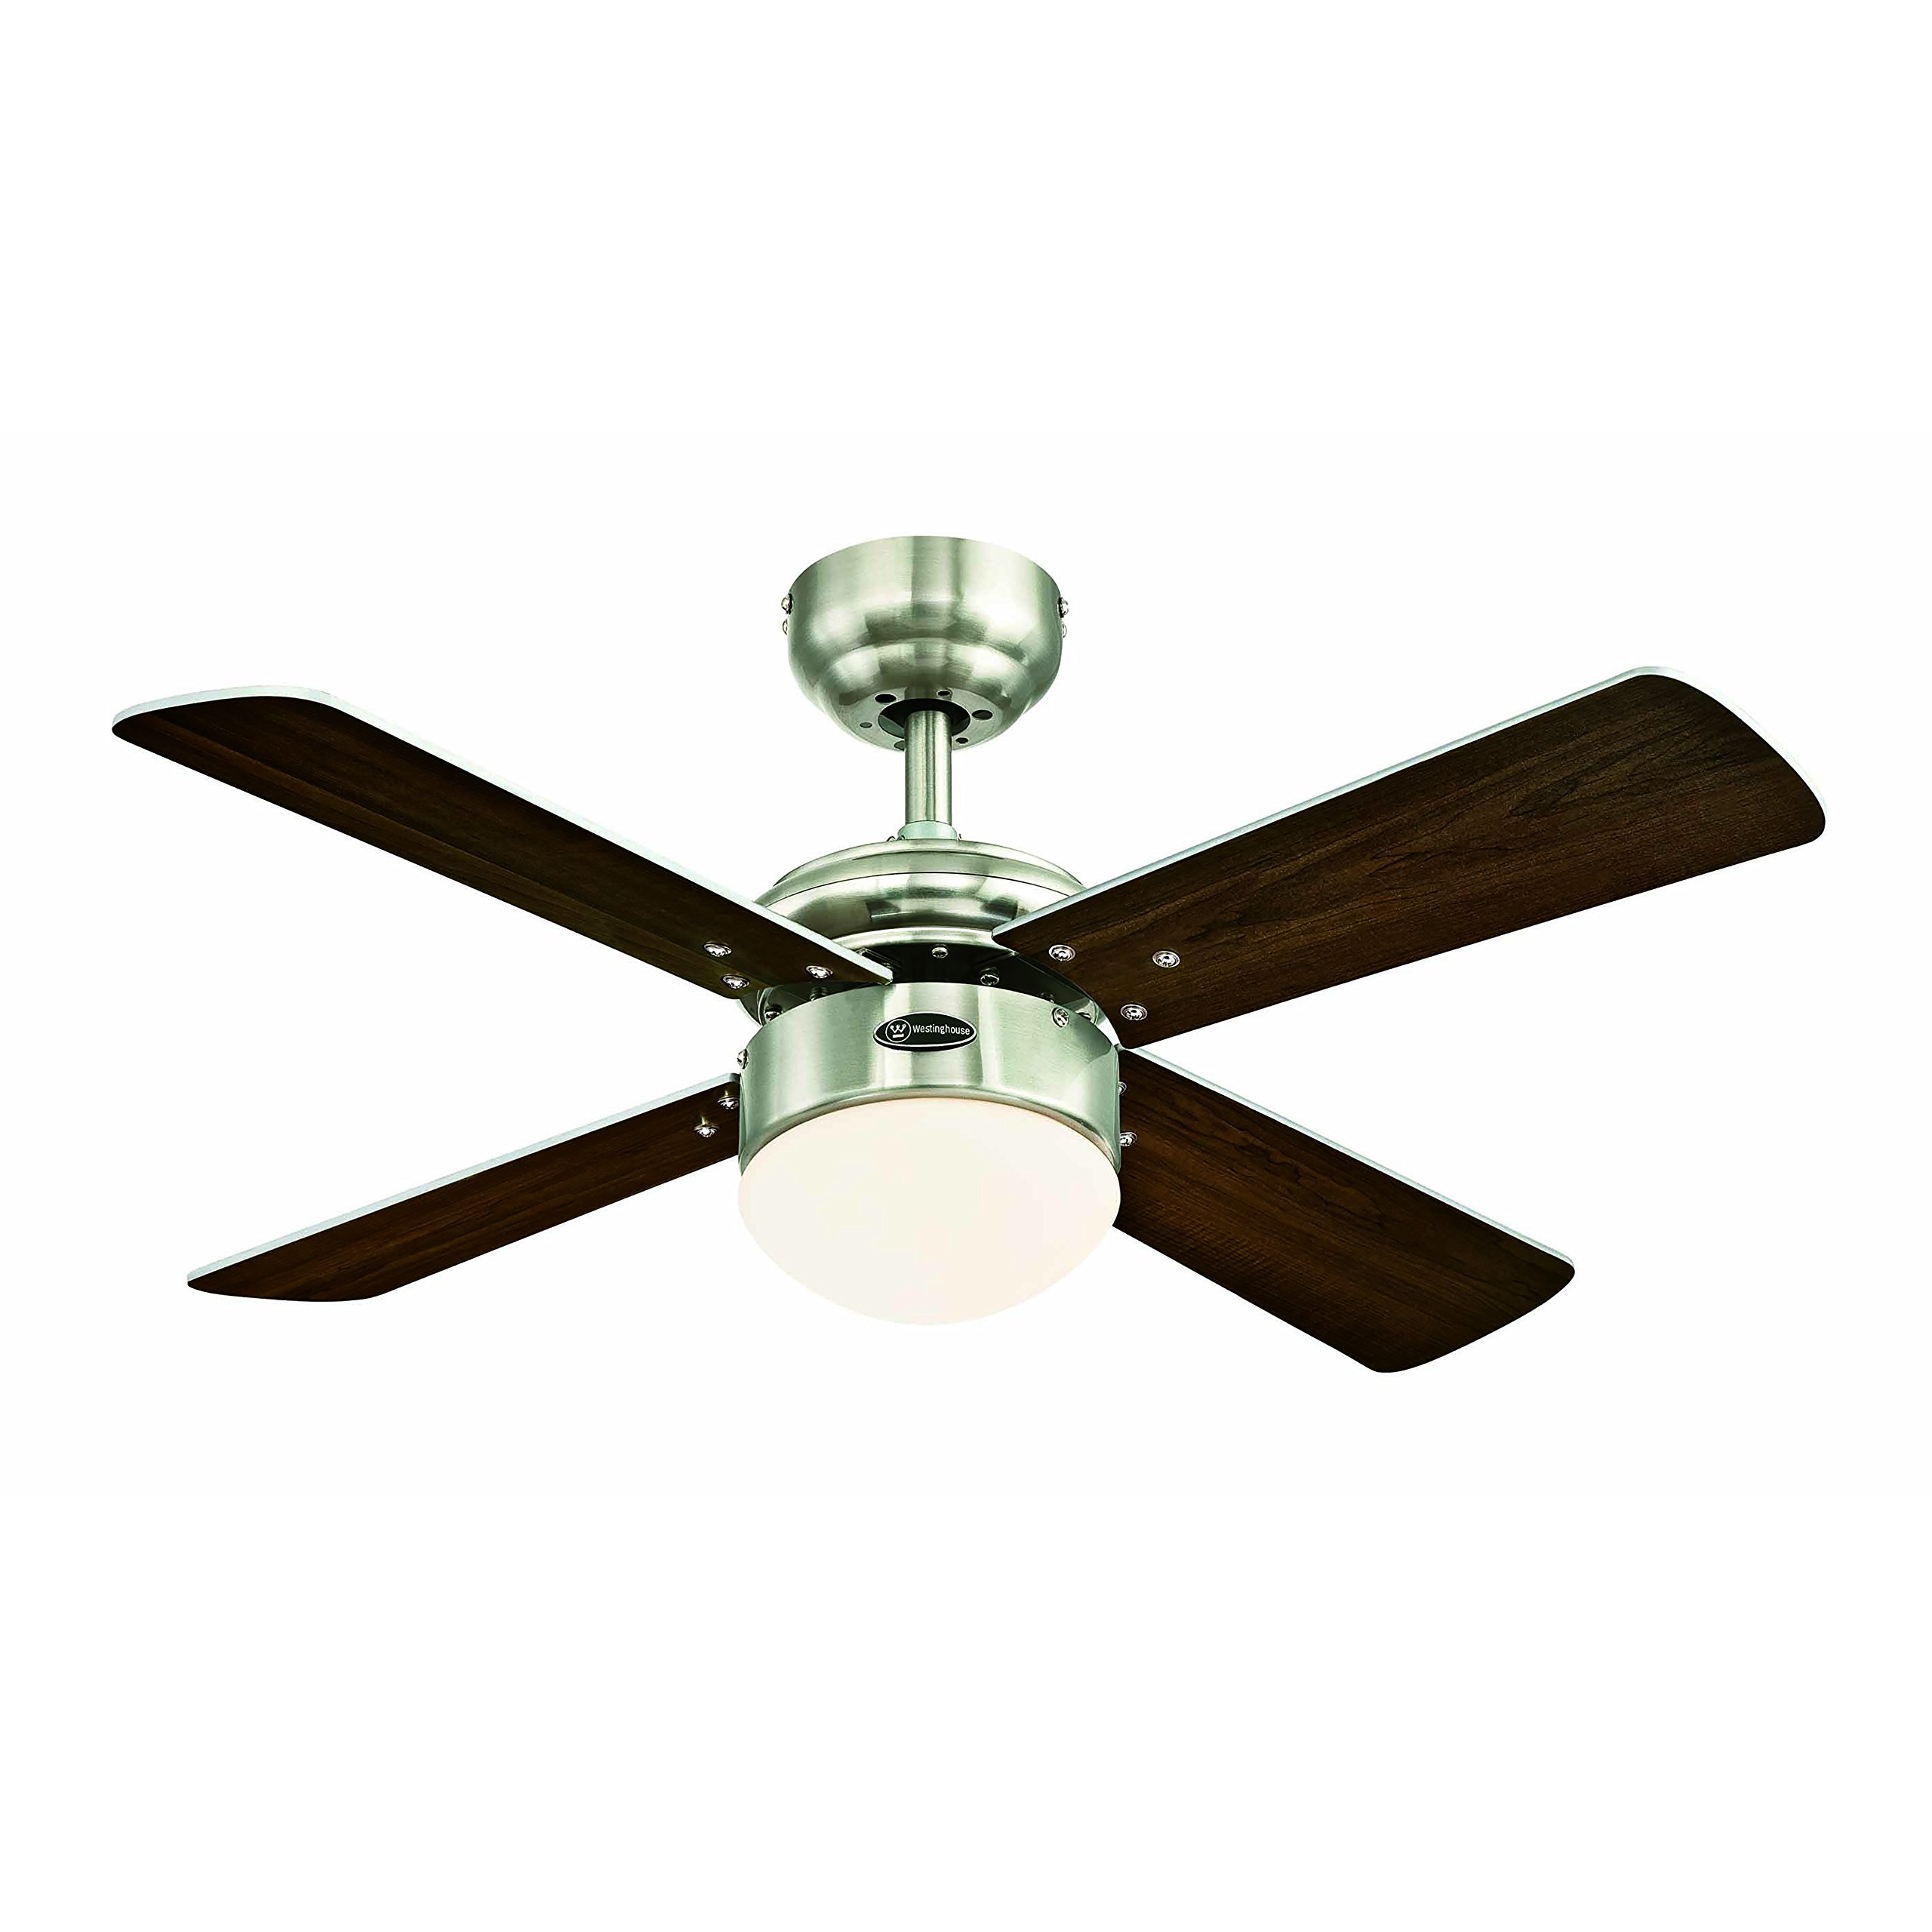 Dimmable LED Light Kit with Opal Frosted Glass Colosseum 90 cm Brushed Nickel Indoor LED Ceiling Fan